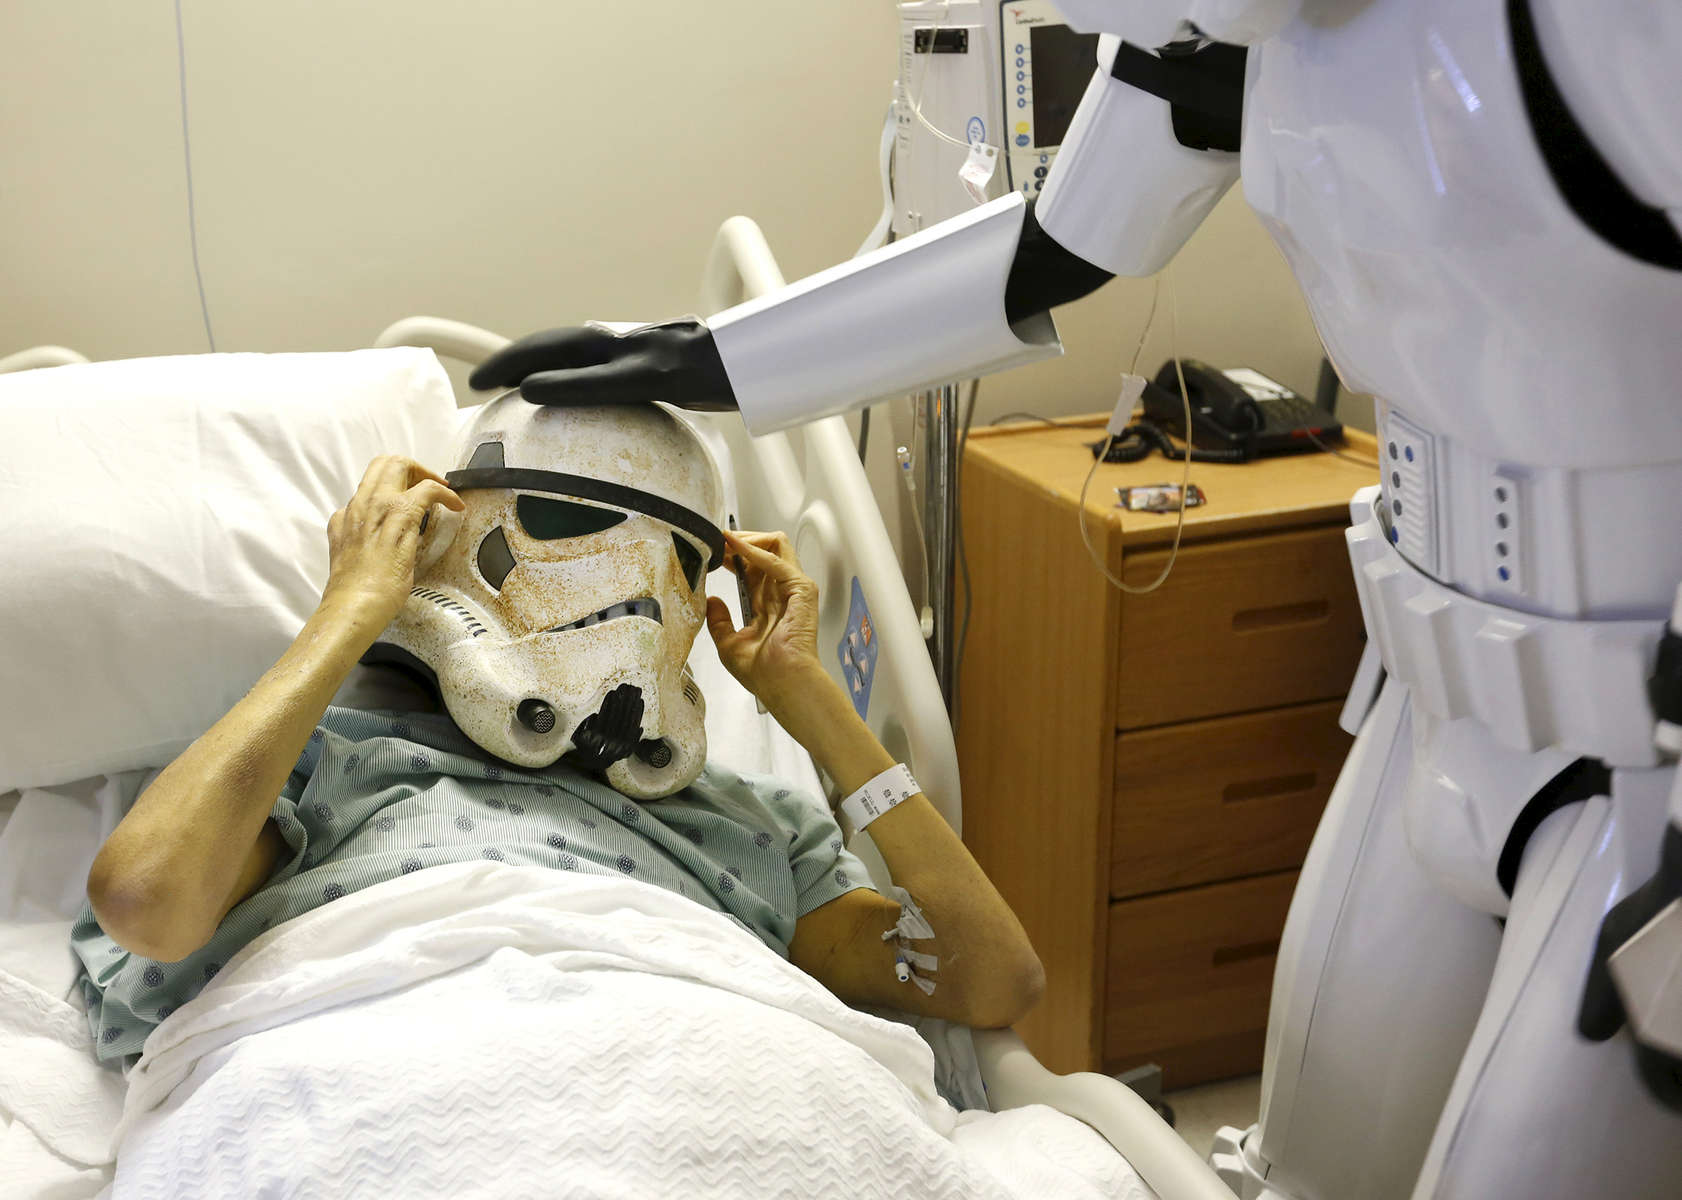 Patient Richard Dillon gets a surprise visit from Star Wars characters in his hospital room at IU Health University Hospital November 6, 2015. The surprise was carried out buy the Star Wars costume group the 501st Legion and organized by IU Health nurse Brandy Kopsas-Kingsley after learning her patient, who is in end stage liver failure, is a huge Star Wars fan.Chris Bergin/ IU Health Visual Media